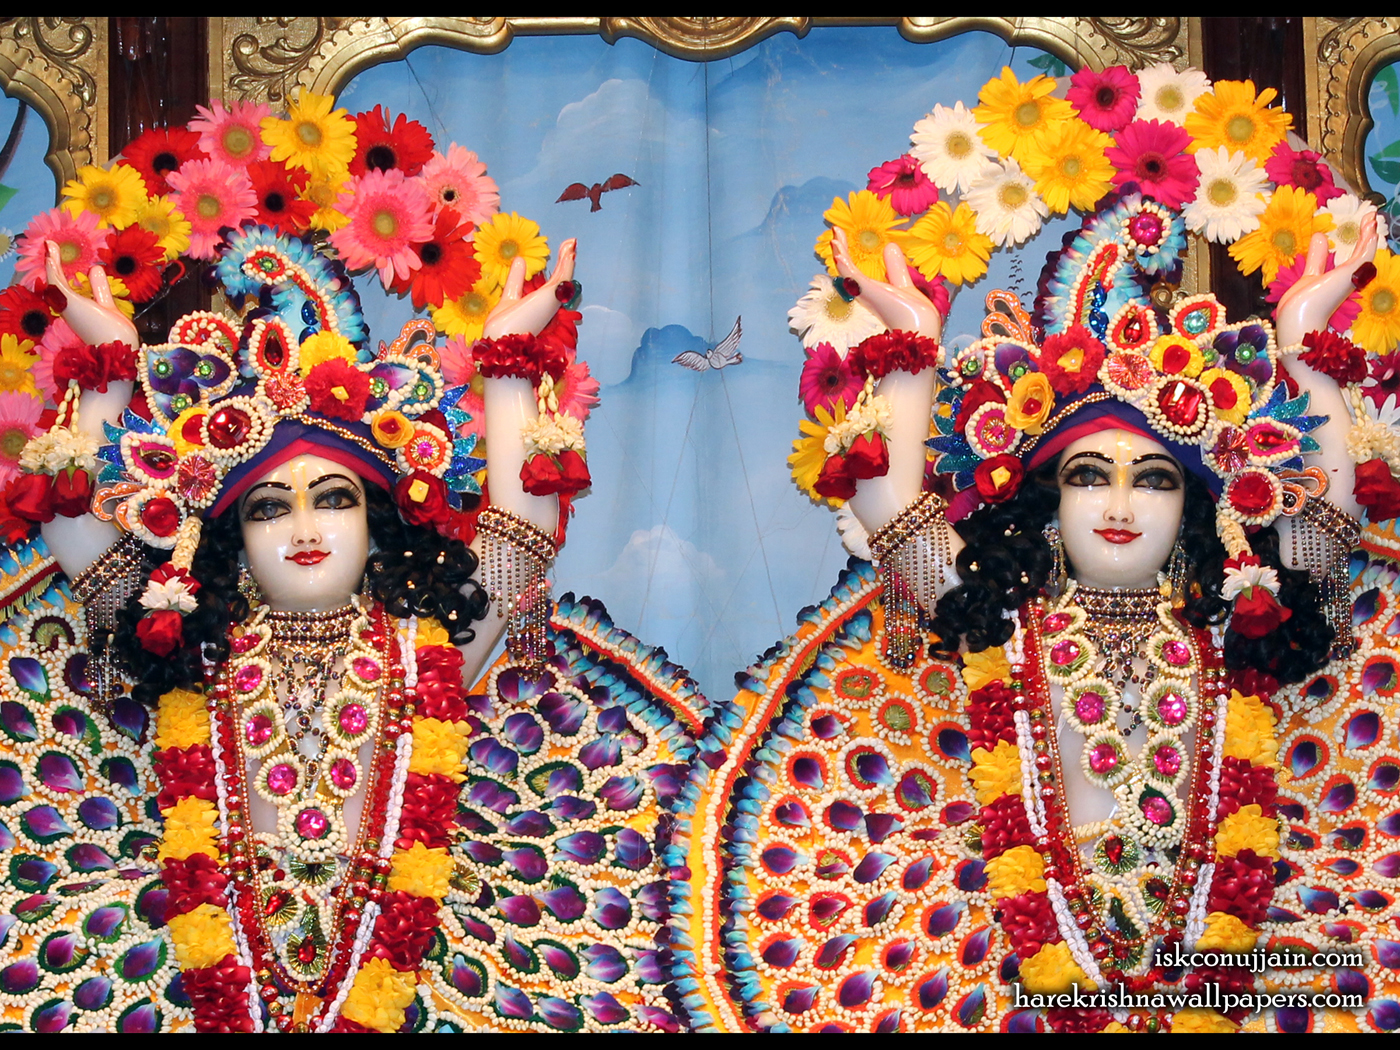 Sri Sri Gaura Nitai Close up Wallpaper (004) Size 1400x1050 Download